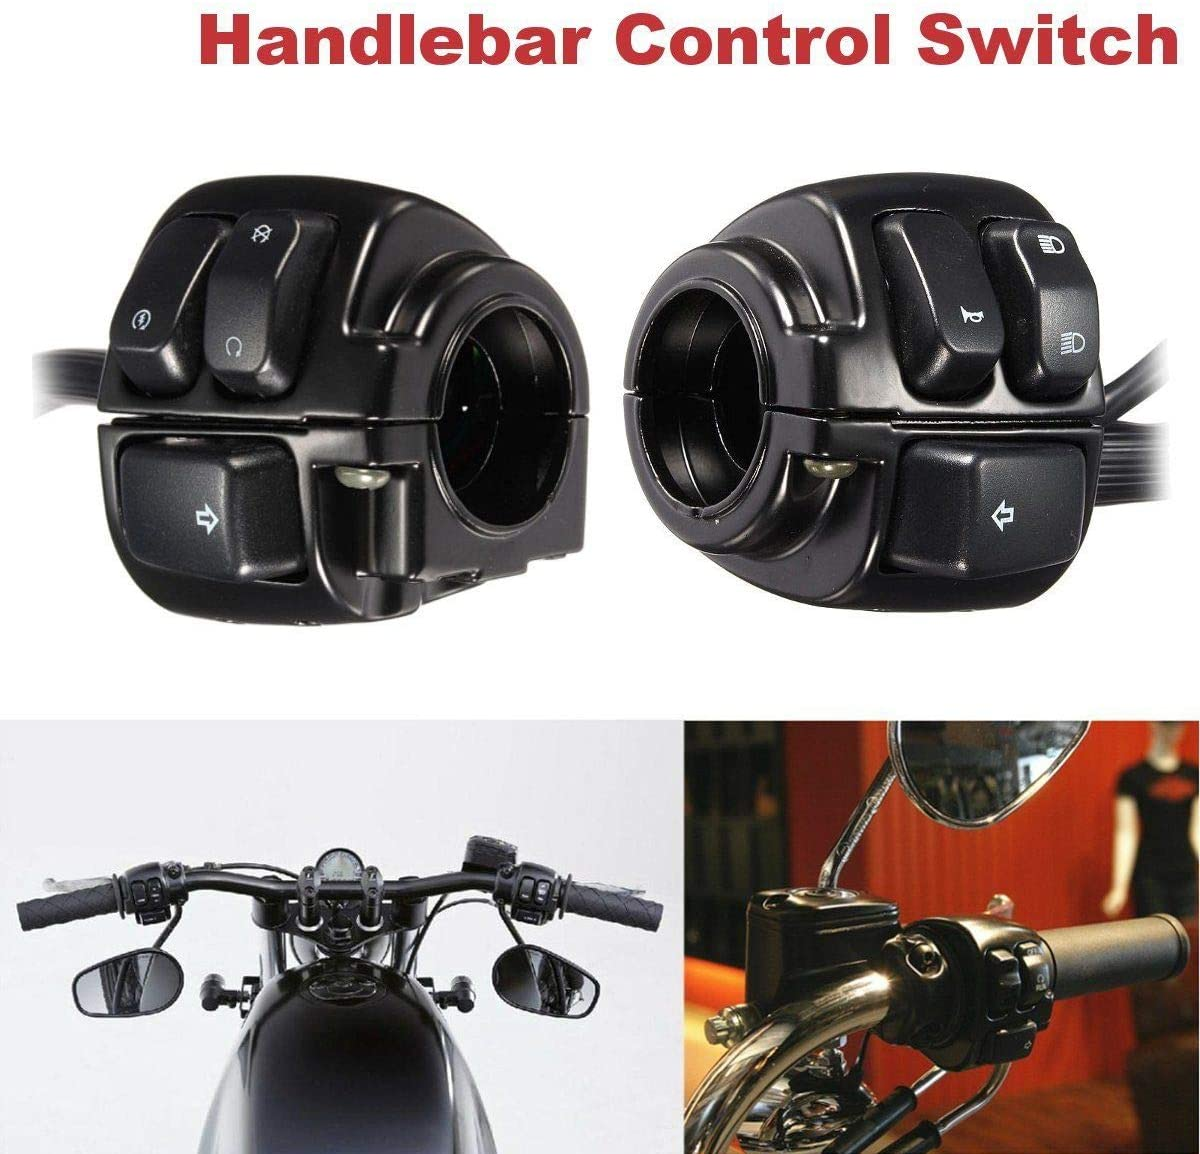 MASO Pair Motorcycle 1'' 25mm Handlebar Control Switch with Wiring Harness for 1996-2012 Sportster 883 1200